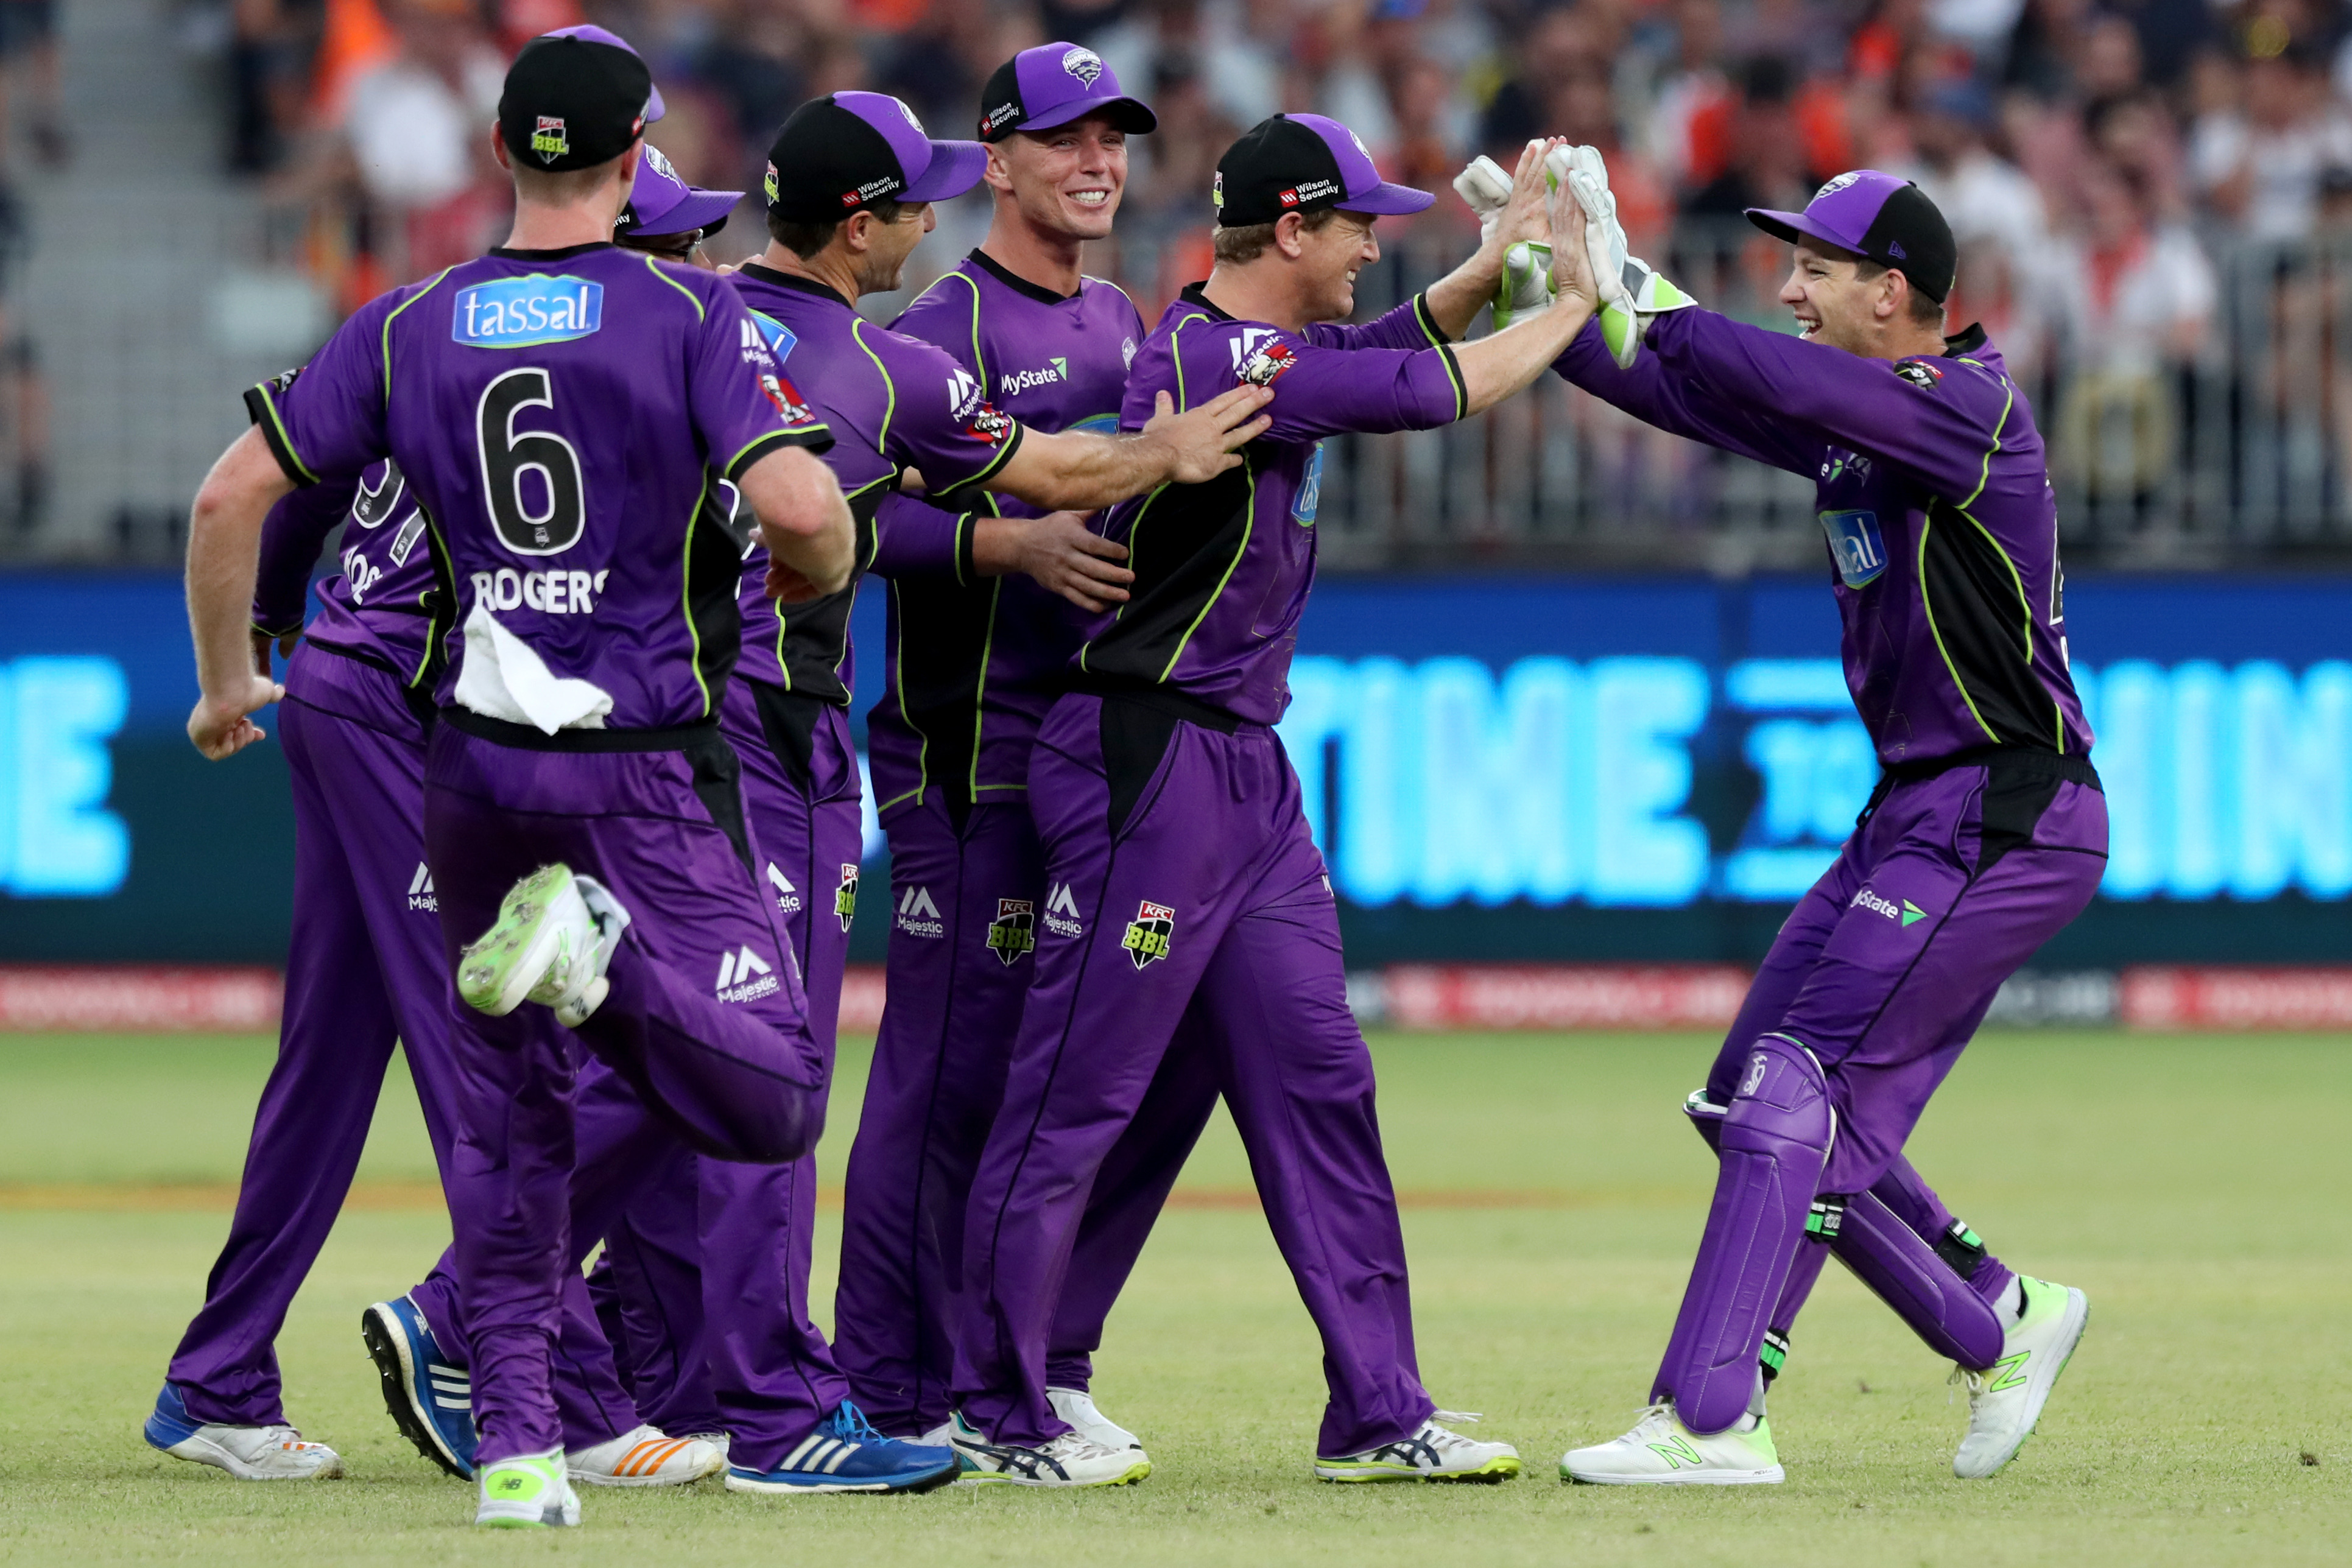 Scorchers burnt as Hurricanes head to the big dance!